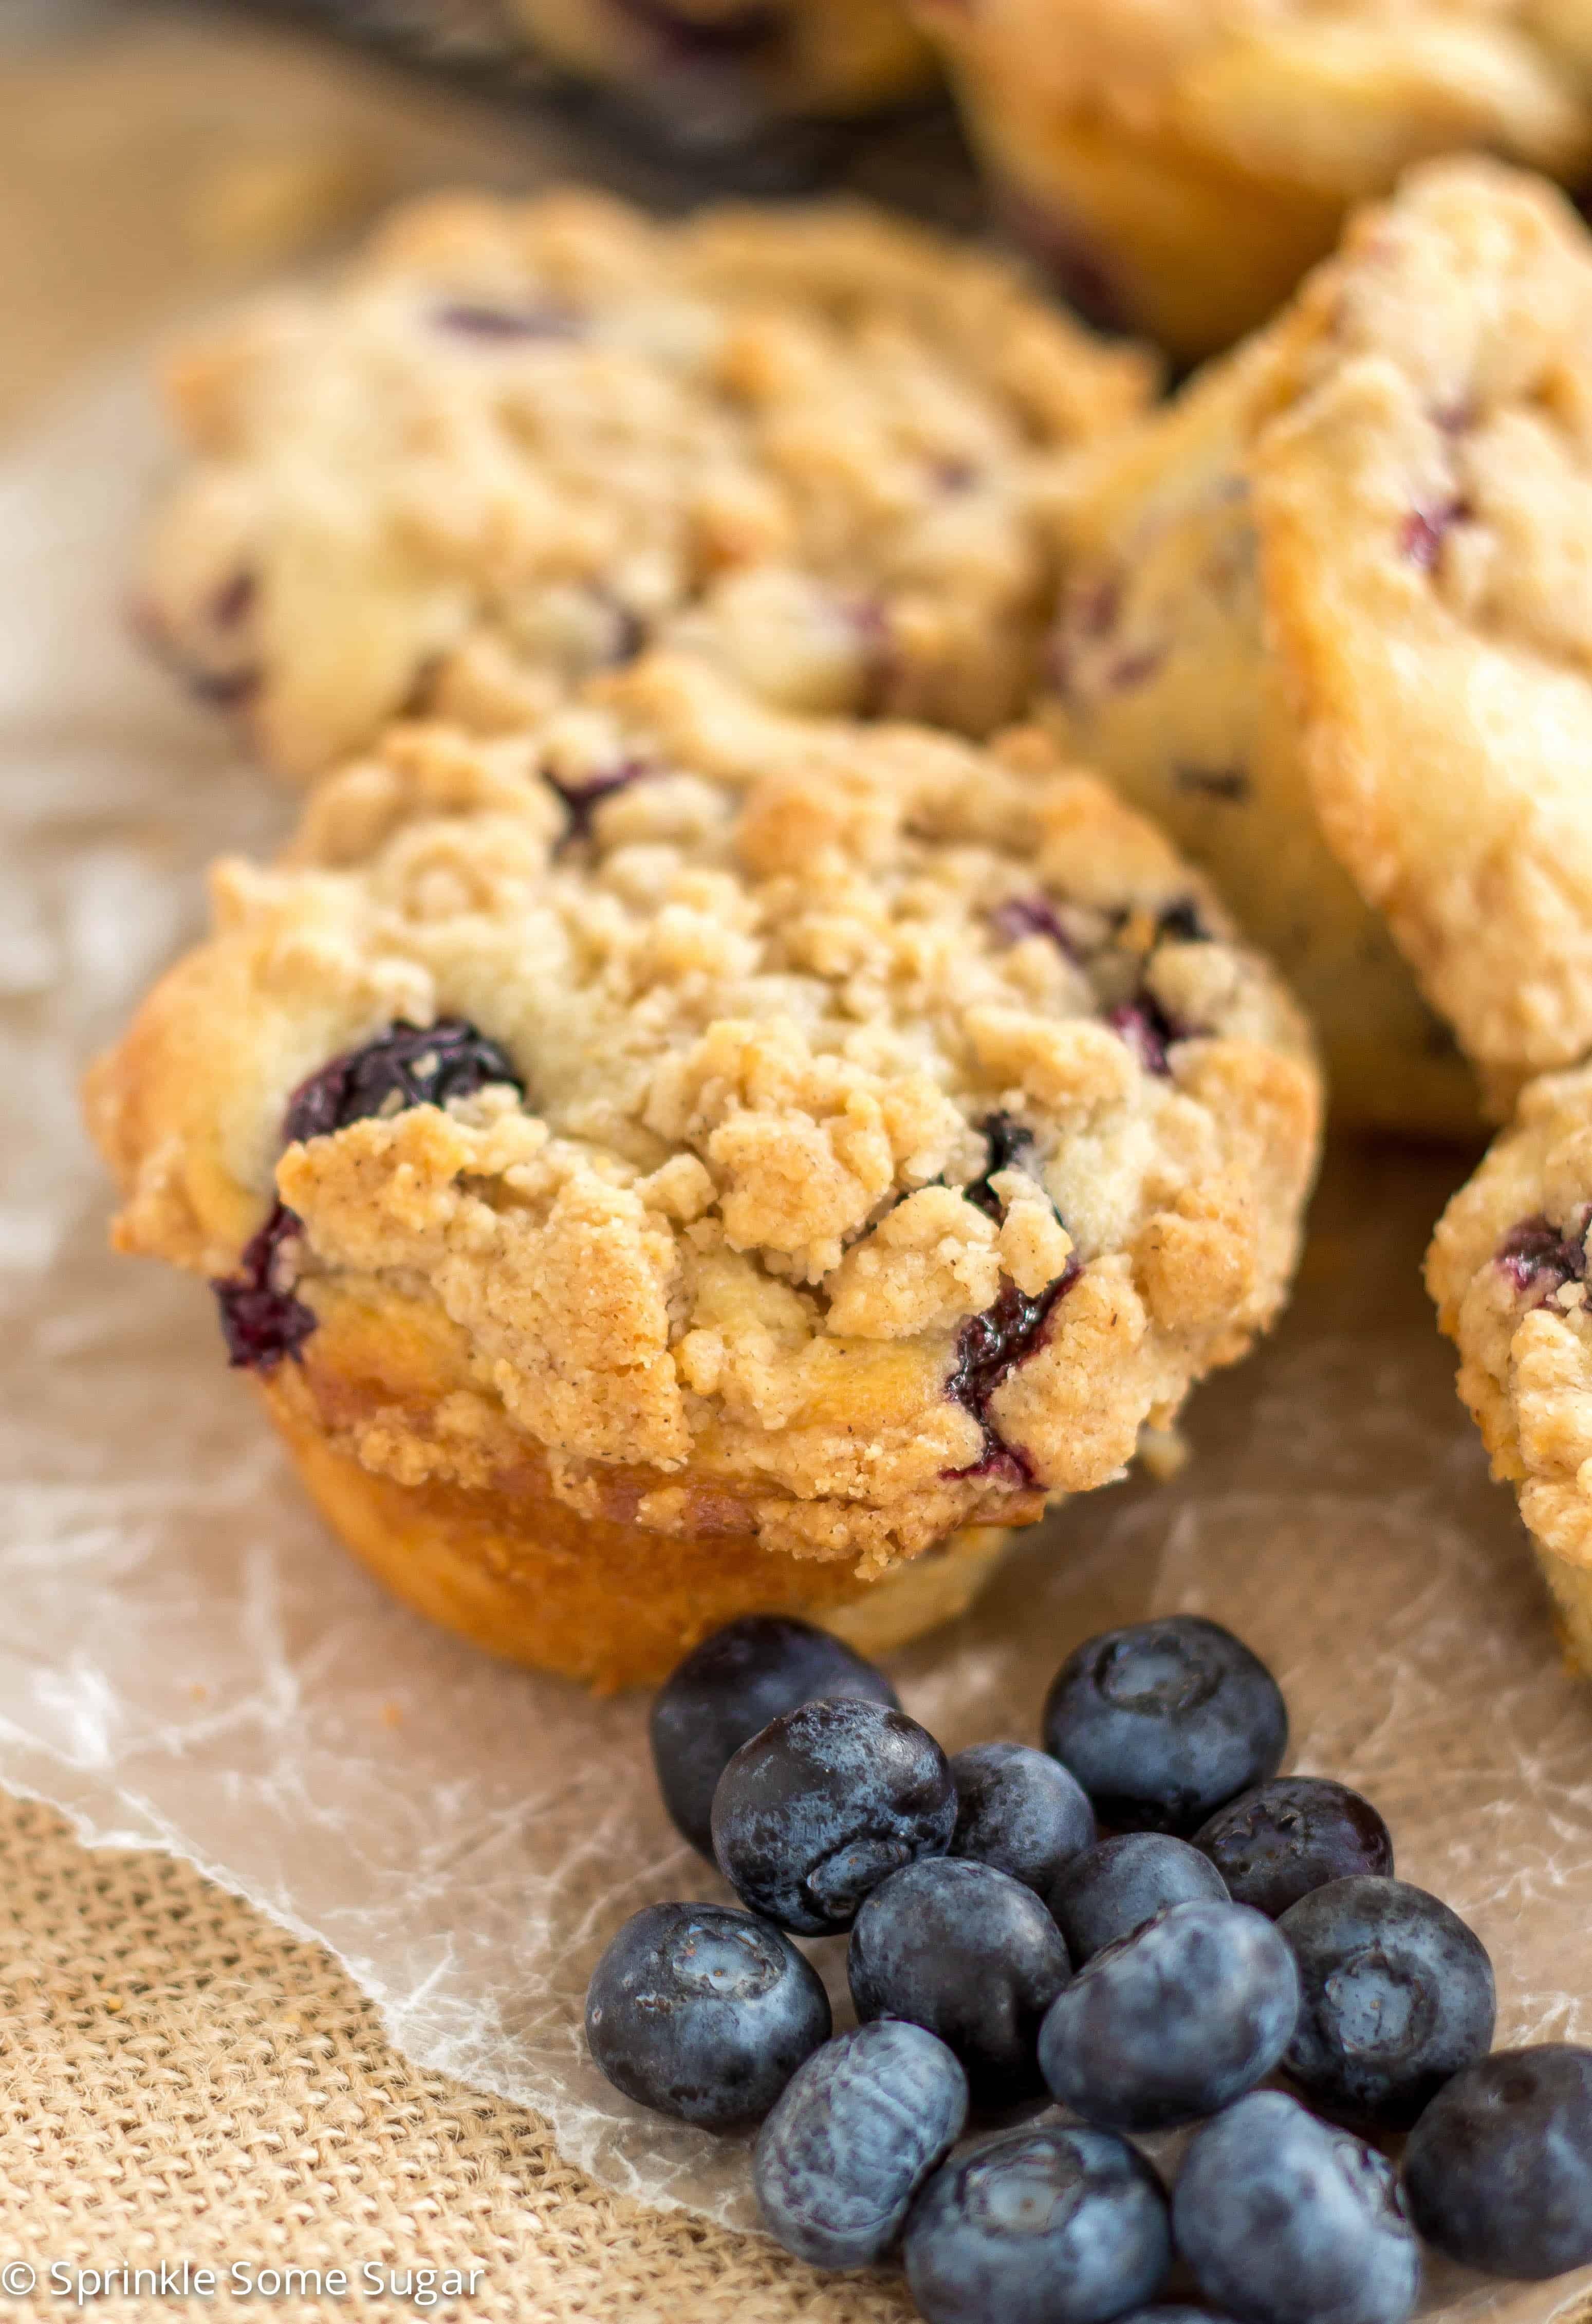 Start your morning off right with a warm blueberry crumb muffin! - Blueberry Crumb Muffins